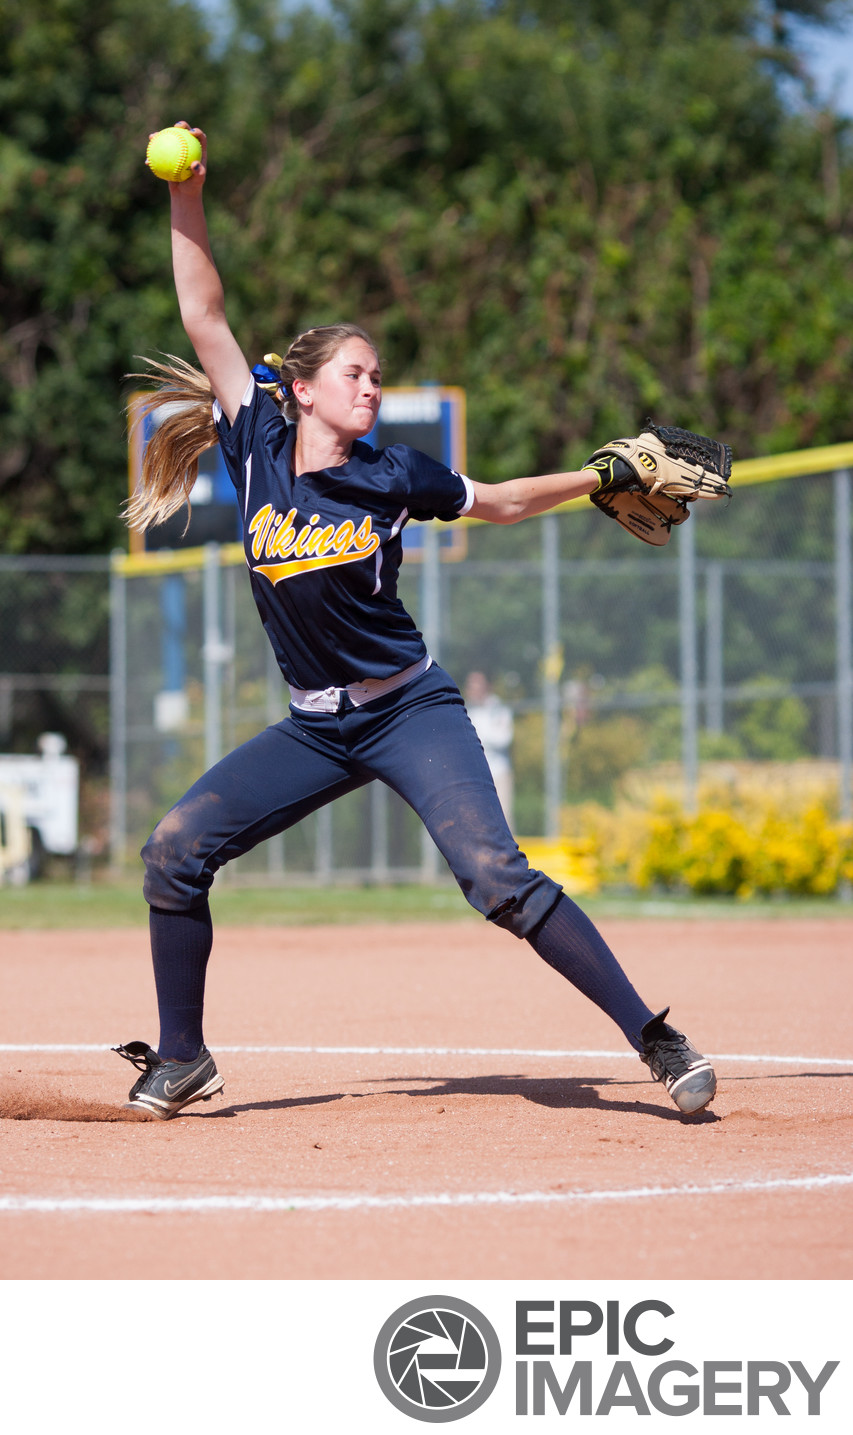 High School Varsity Softball Pitcher